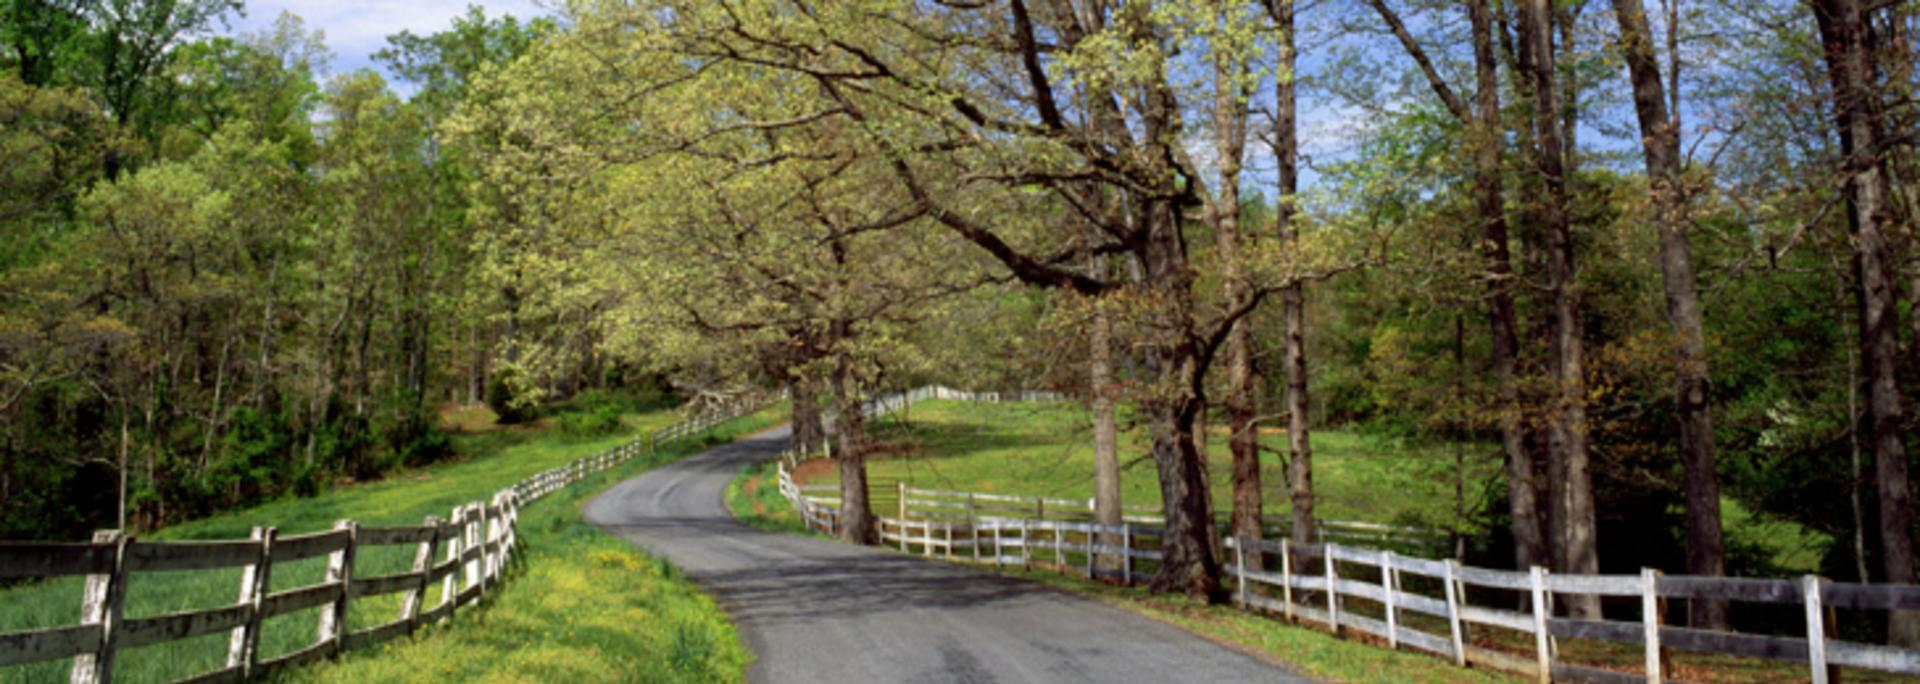 Country Byway